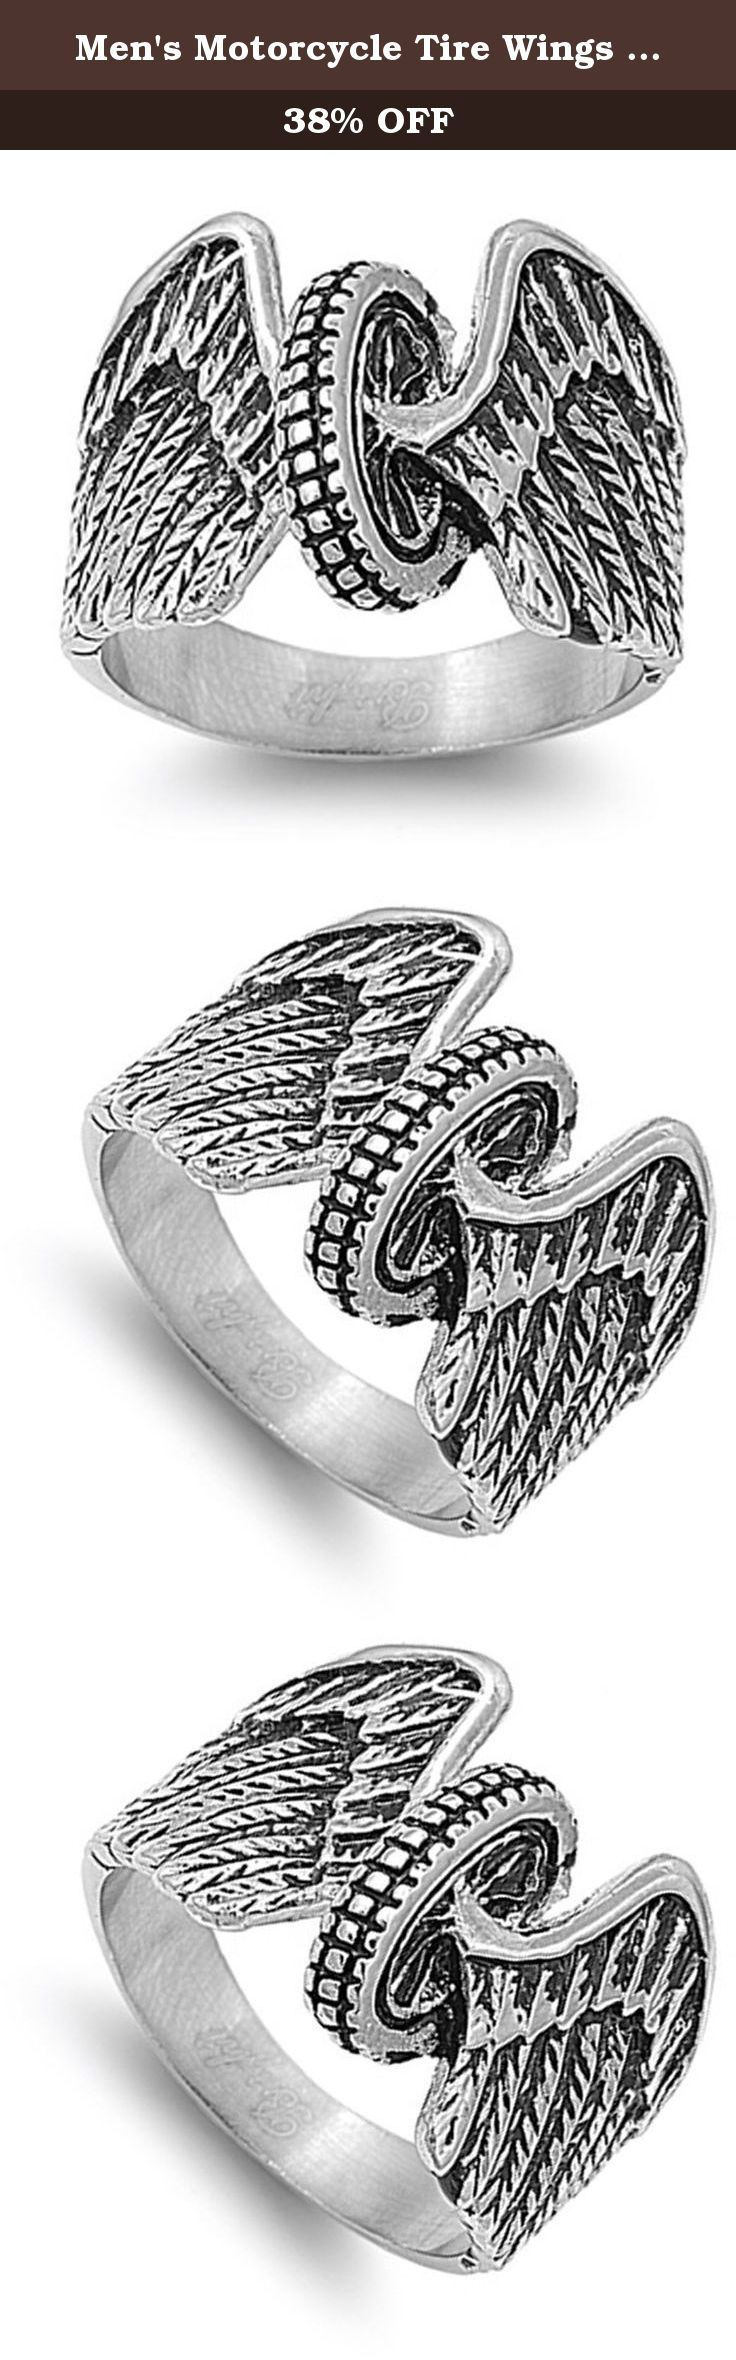 """Men's Motorcycle Tire Wings Biker Ring Stainless Steel Band New 17mm Size 15 (STL40276-15). All our stainless steel jewelry is crafted from the finest 316L grade stainless steel, referred to by the medical community as surgical steel, that provides a flawless finish guaranteed to stand the test of time. Our """"comfort fit"""" jewelry is designed using the latest laser technology to ensure precision cuts, smooth edges and quality finishes. We promise superior service which includes fast…"""